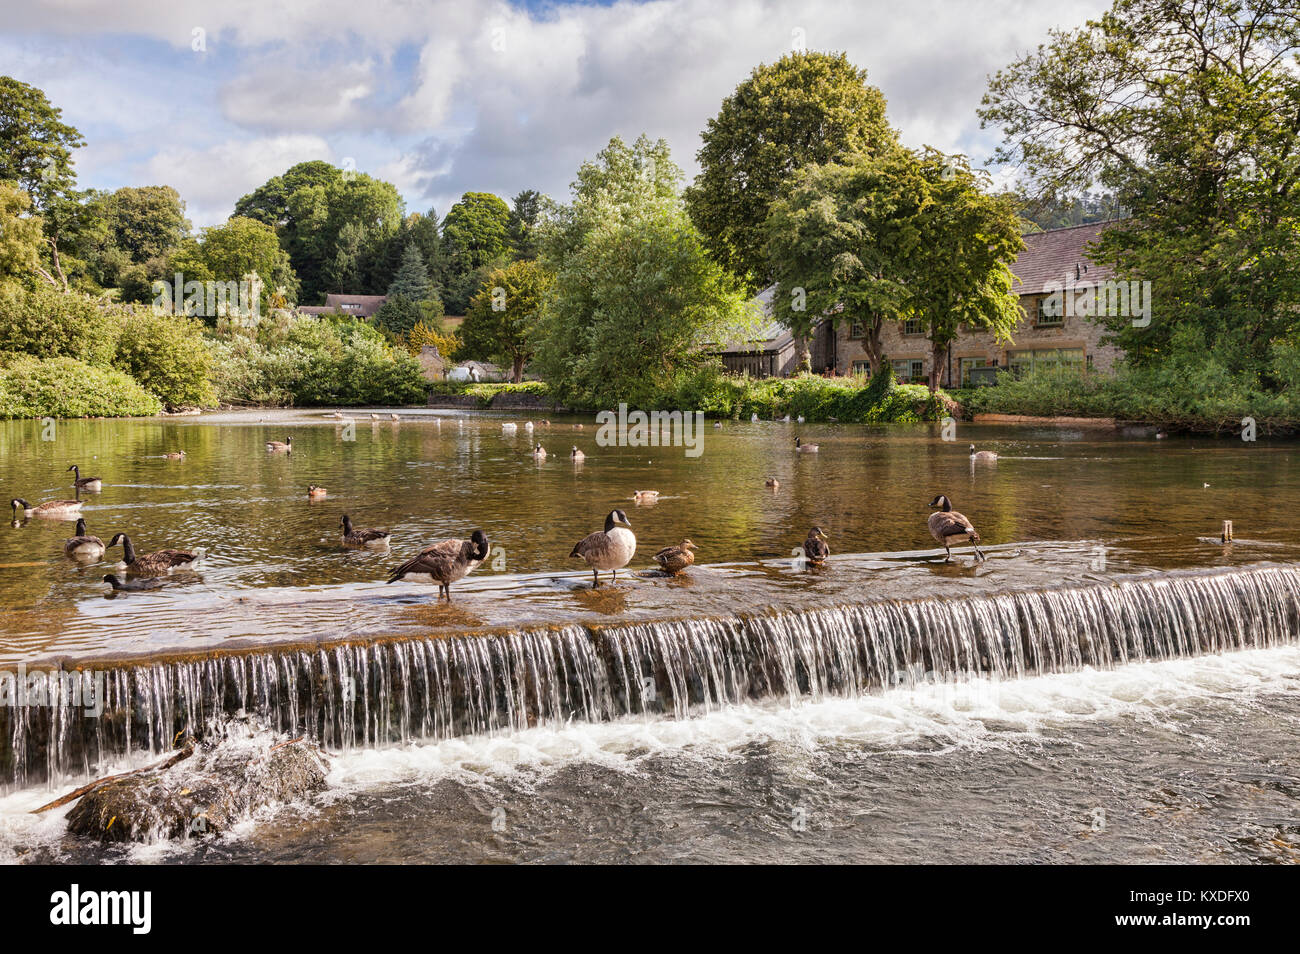 Canada geese and ducks on the weir on the River Wye at Bakewell, Derbyshire, England - Stock Image